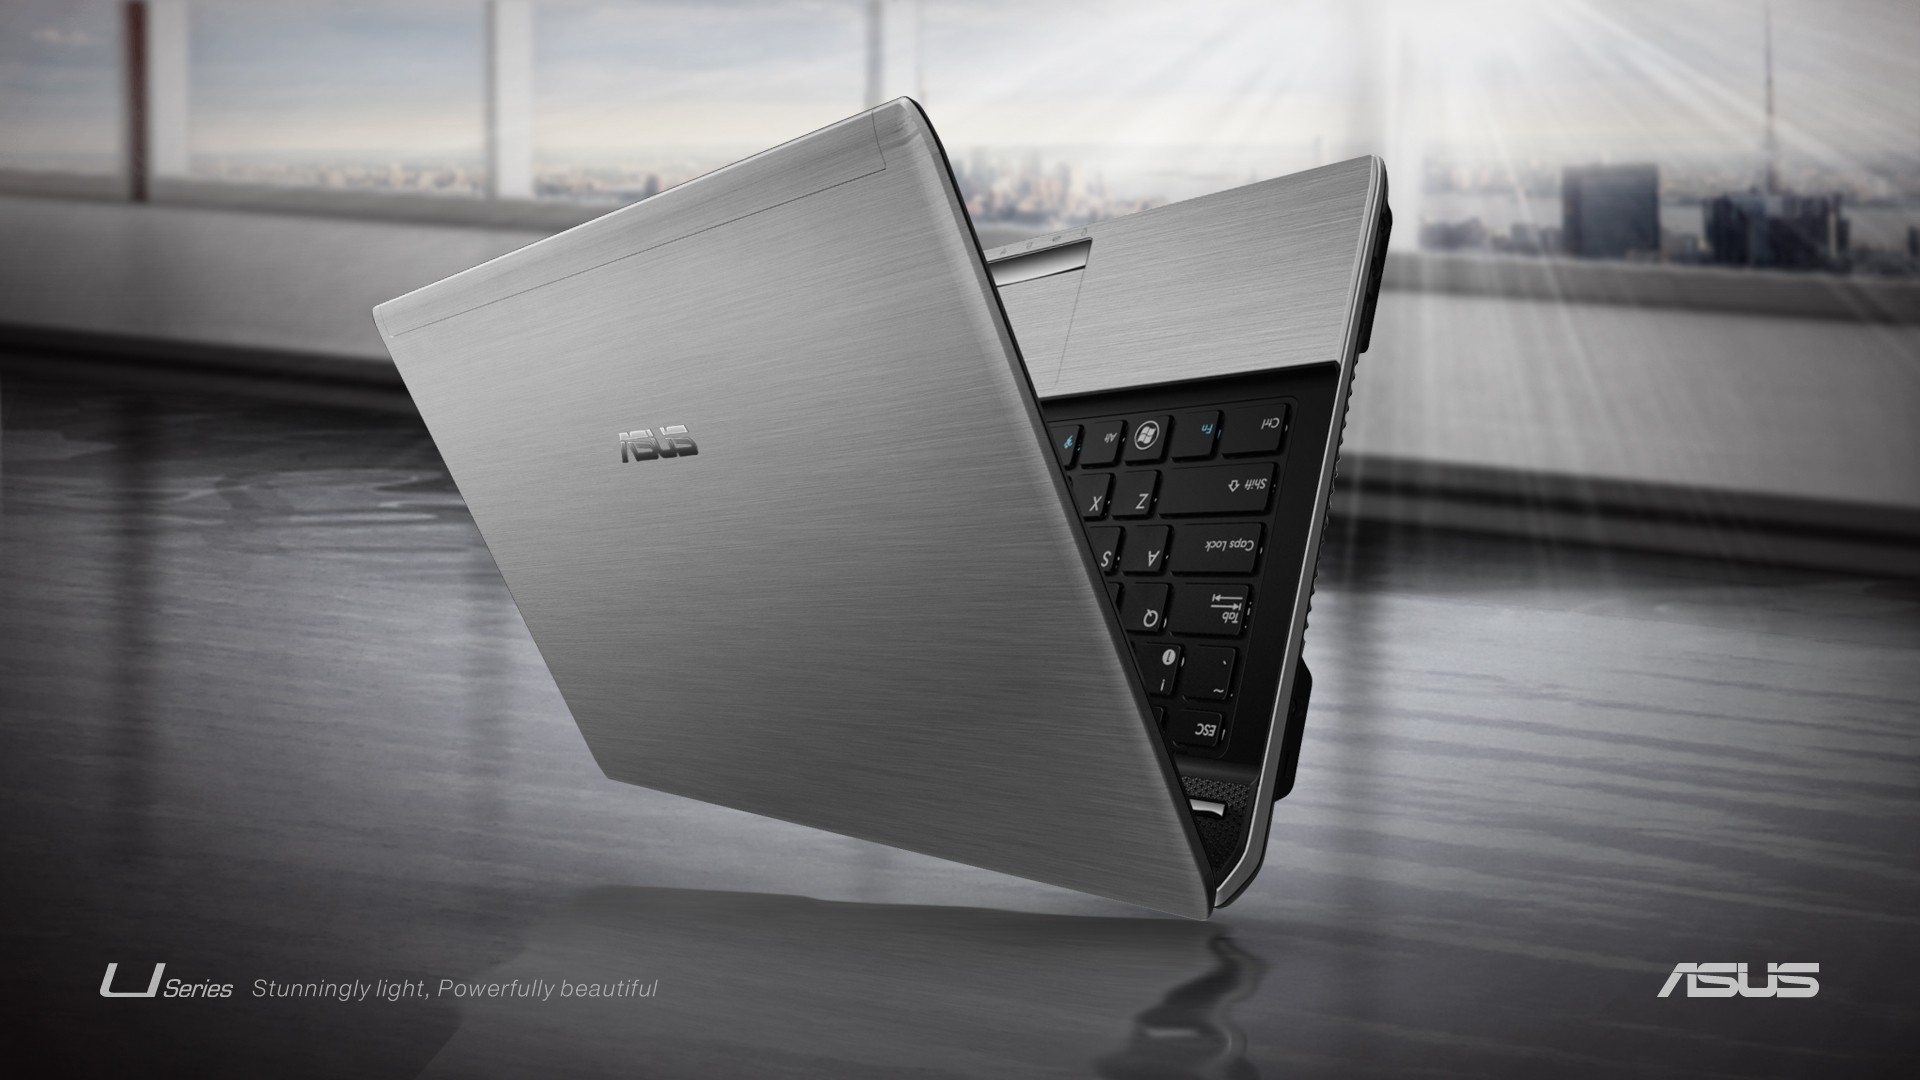 laptop-asus-wallpaper-hd | wallpaper.wiki